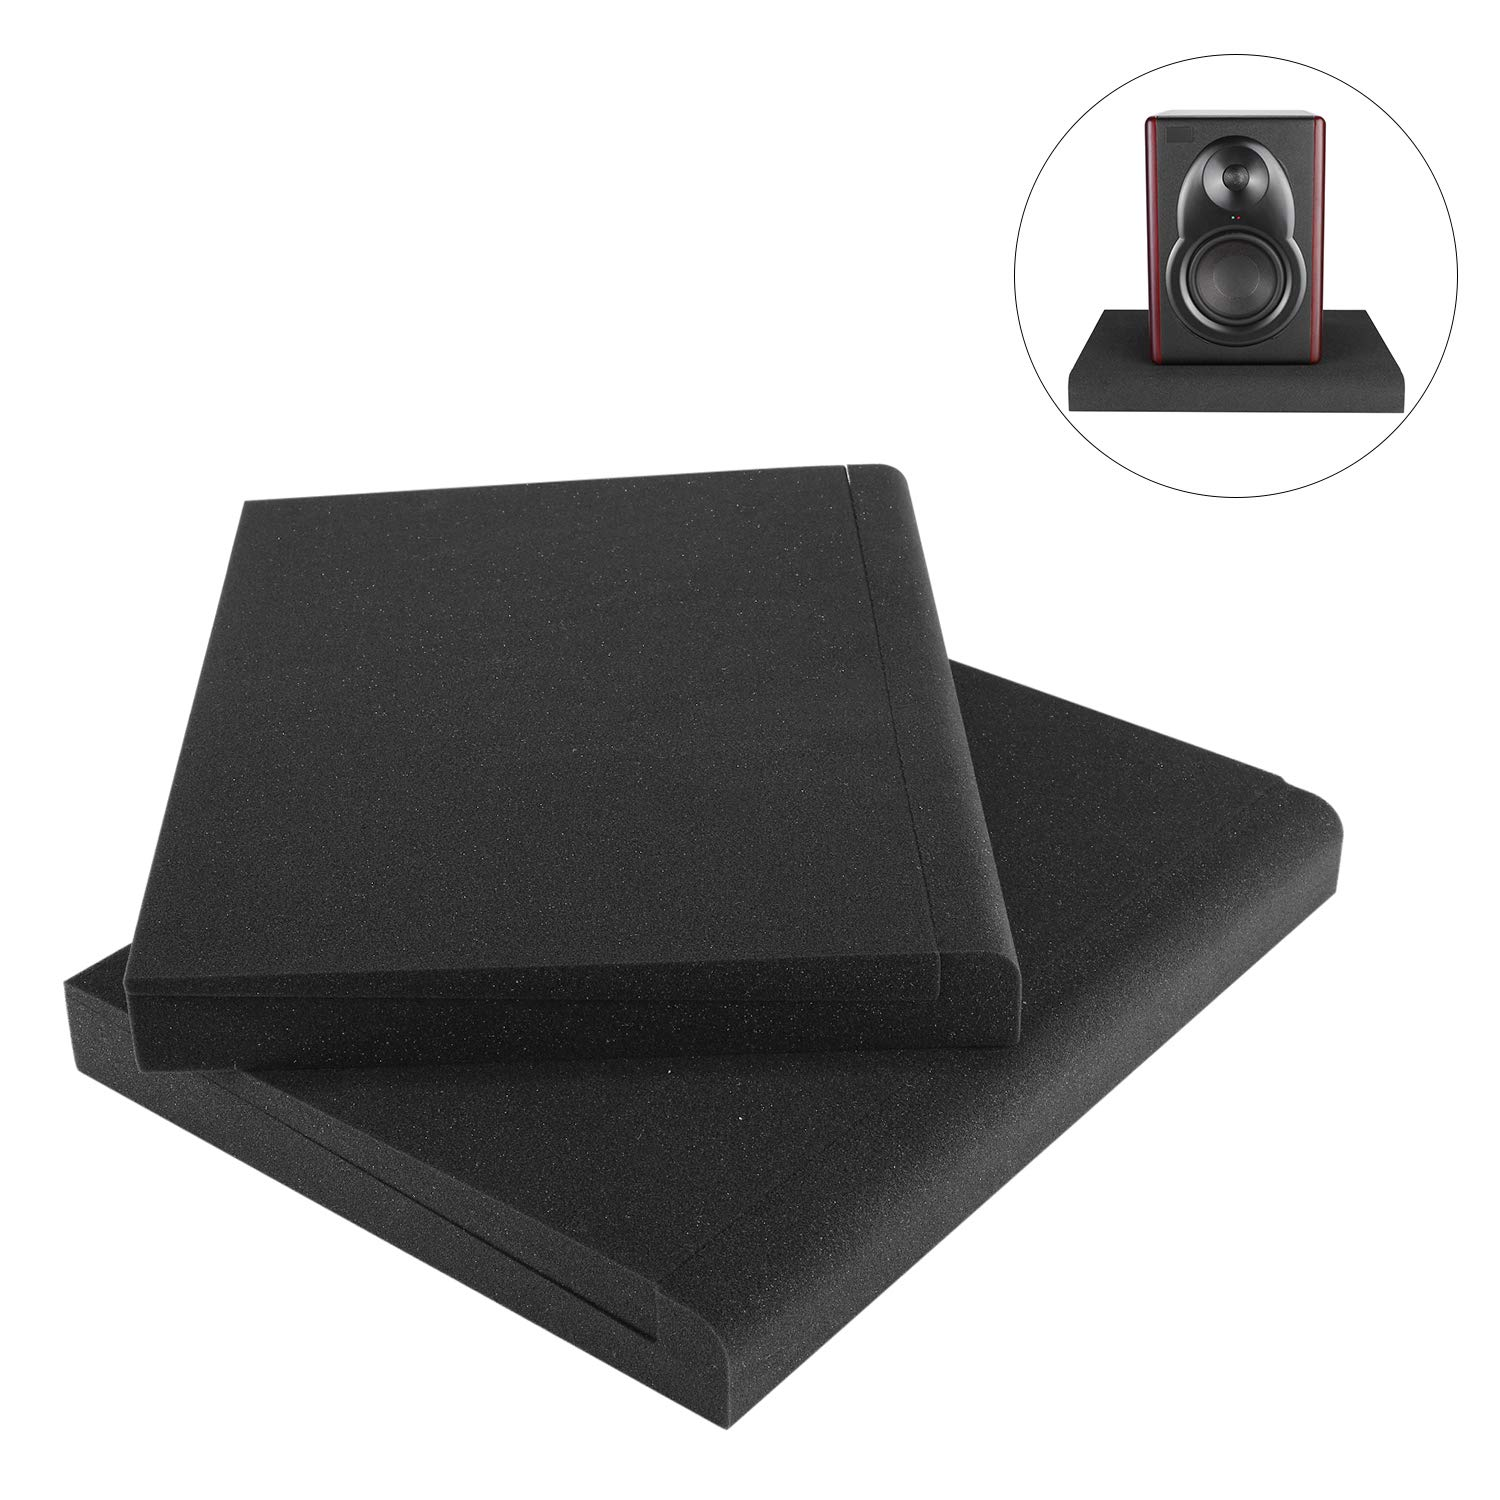 Neewer 2 Packs Studio Monitor Isolation Pads for 8 inch Monitors, Made of High Density Acoustic Foams, 15.4 x 11.8 inches/39 x 30 Centimeters Compatible with Most 8-inch Speaker Boxes (Black)